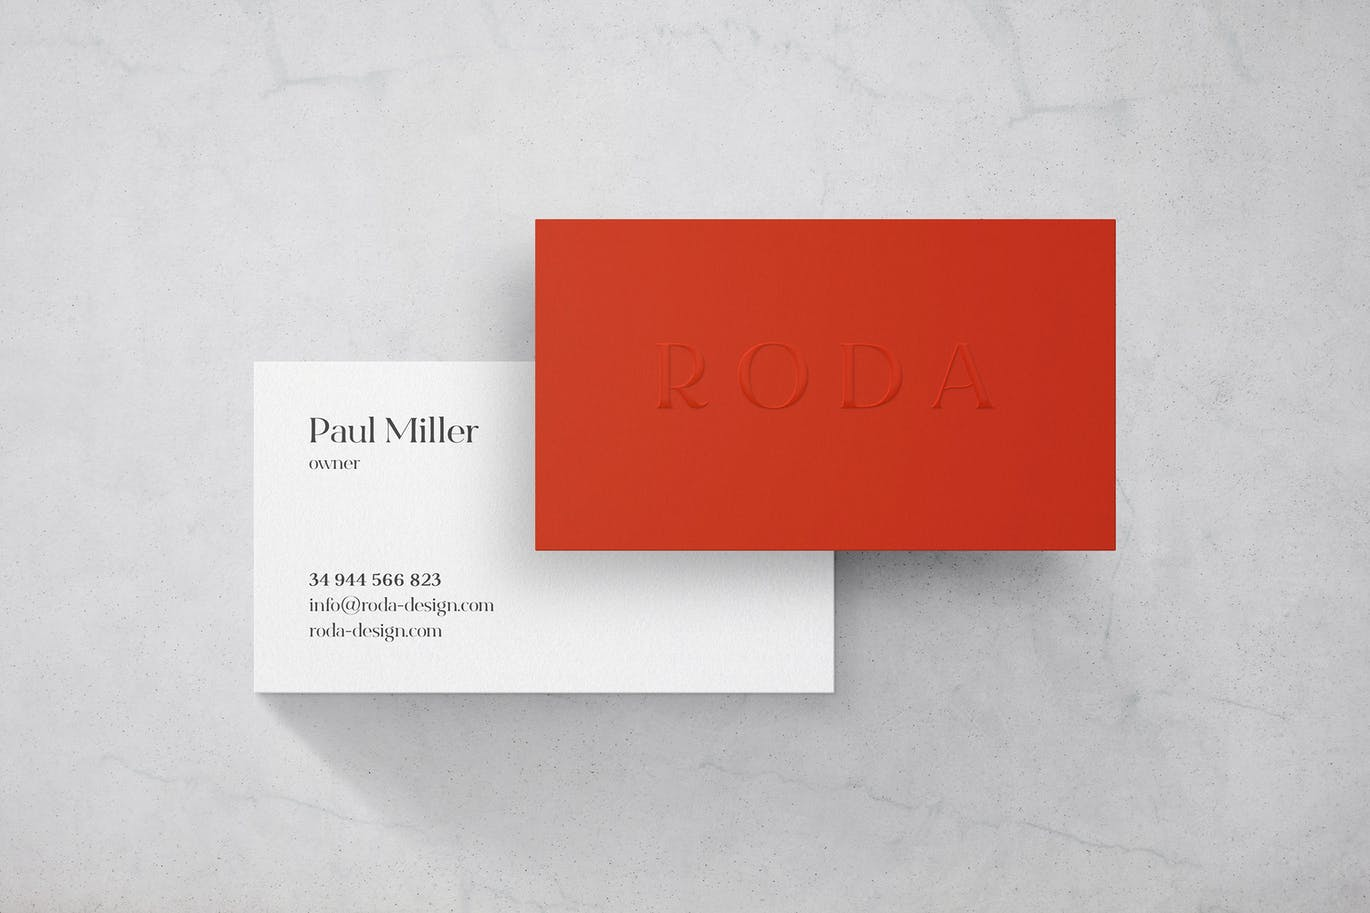 marble-business-card-mockup